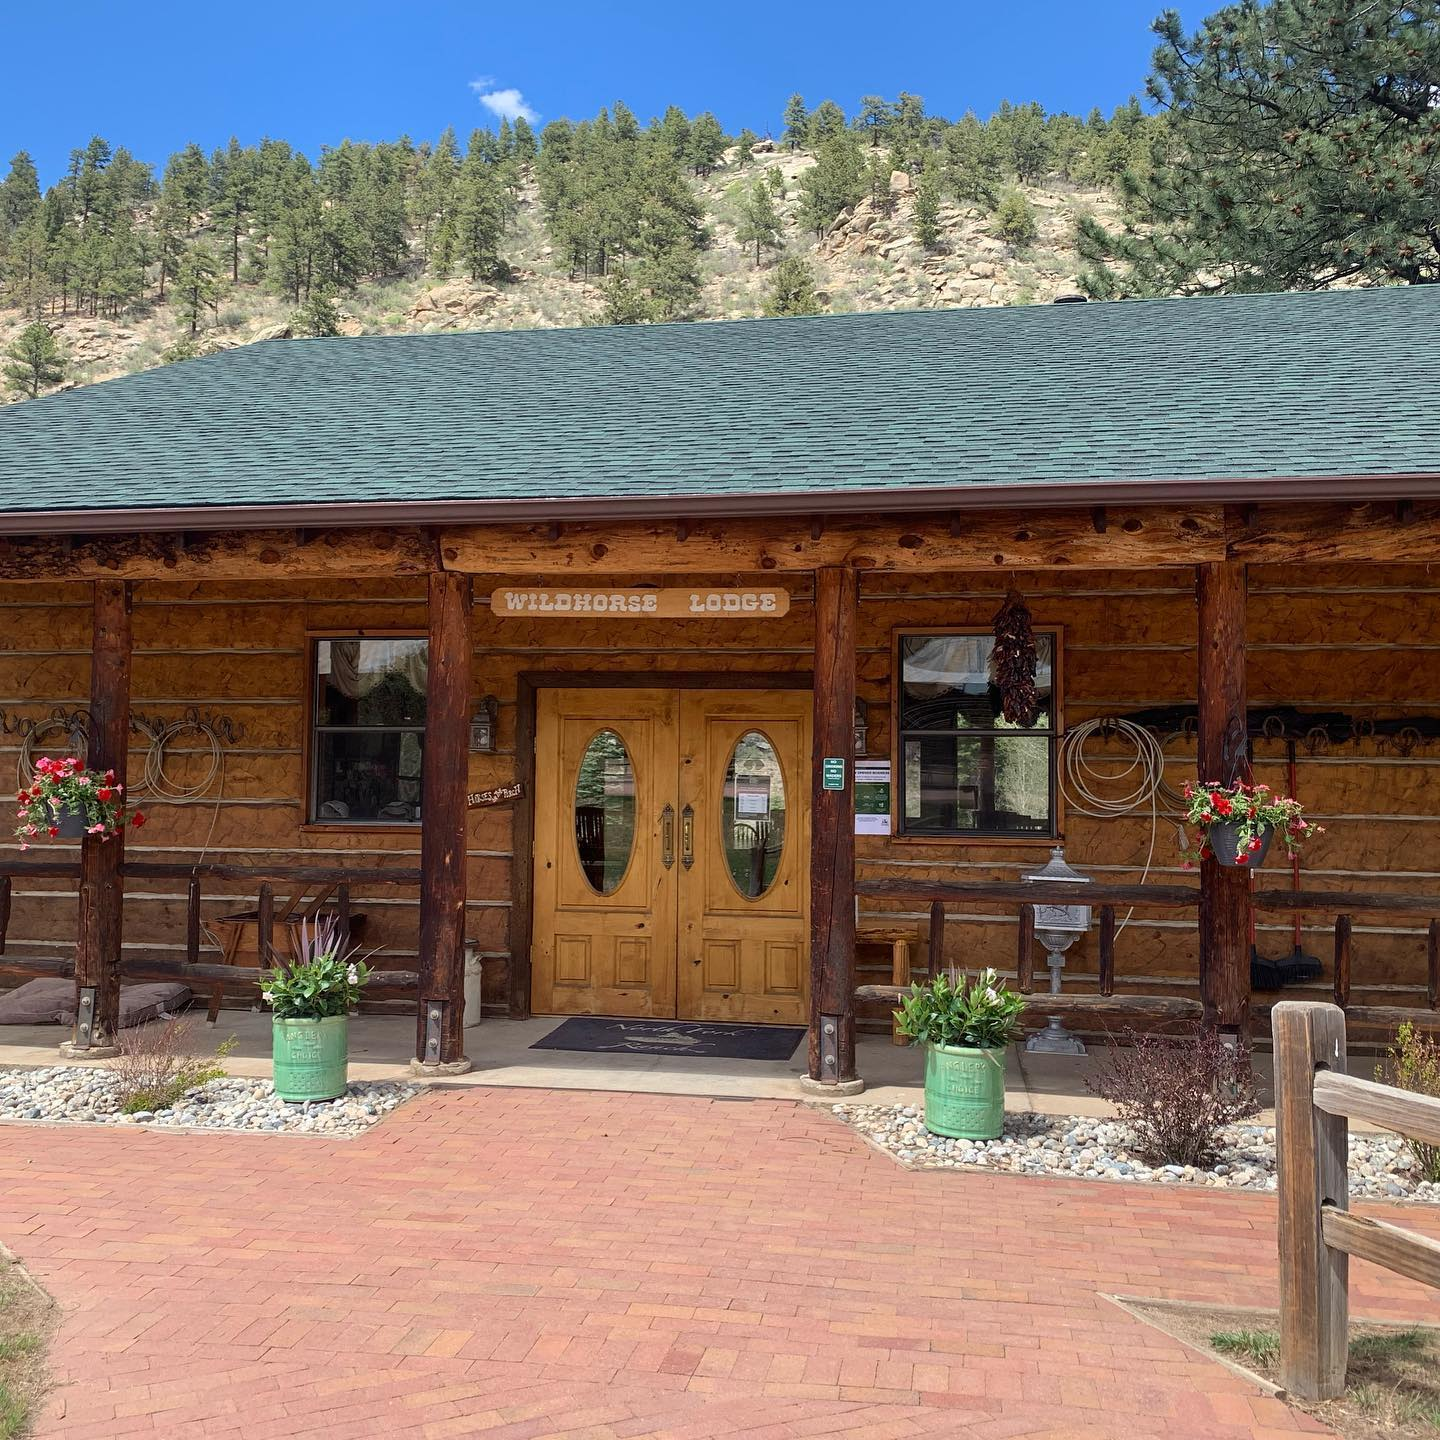 Image of the Wildhorse Lodge at North Fork Ranch in Shawnee, Colorado